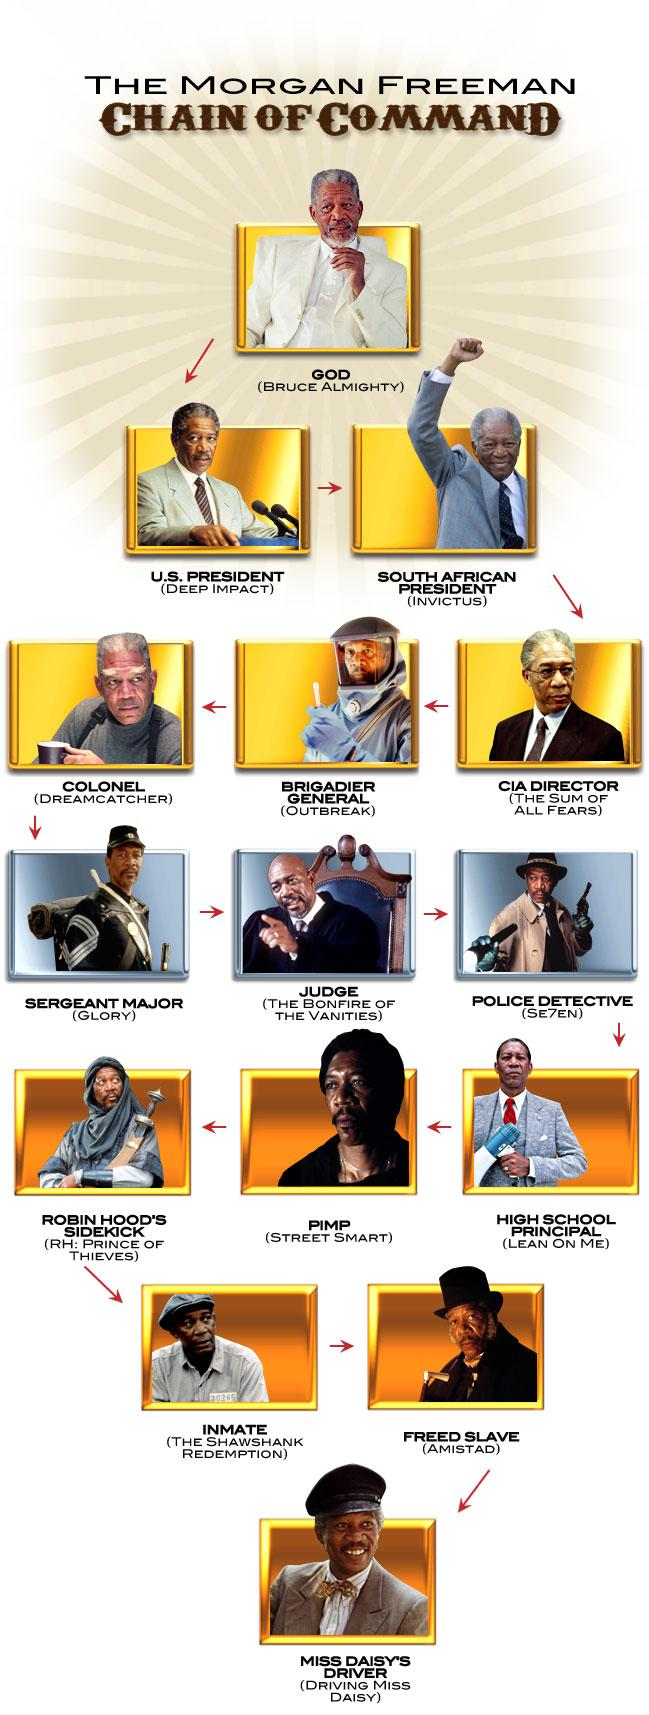 The Morgan Freeman chain of command. http://t.co/oVh0TYgIqs